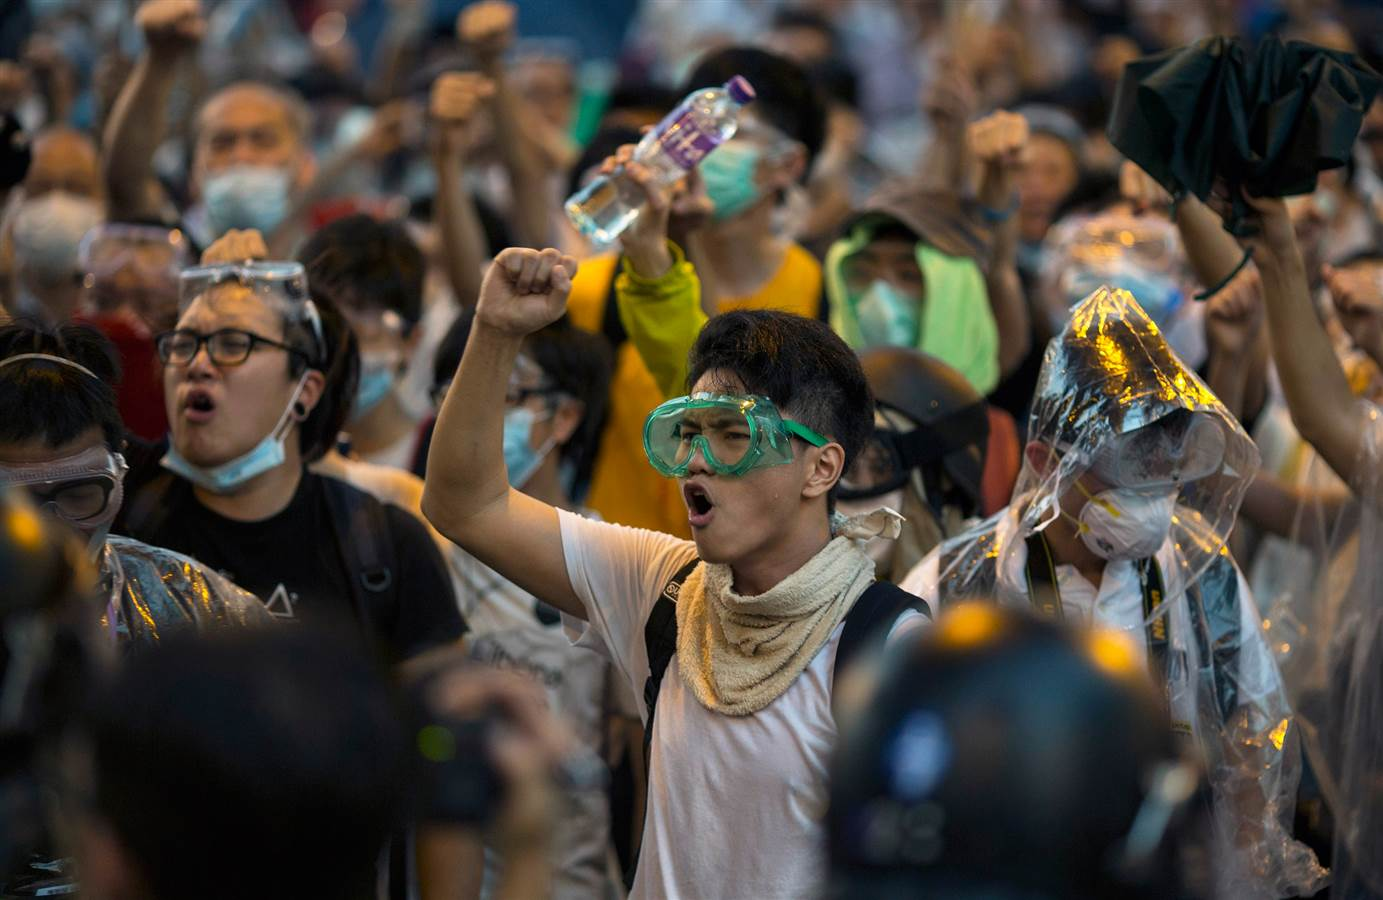 Students shout slogans during a protest outside the Central Government Offices and Legislative Council complex in Hong Kong, on Sept. 28.